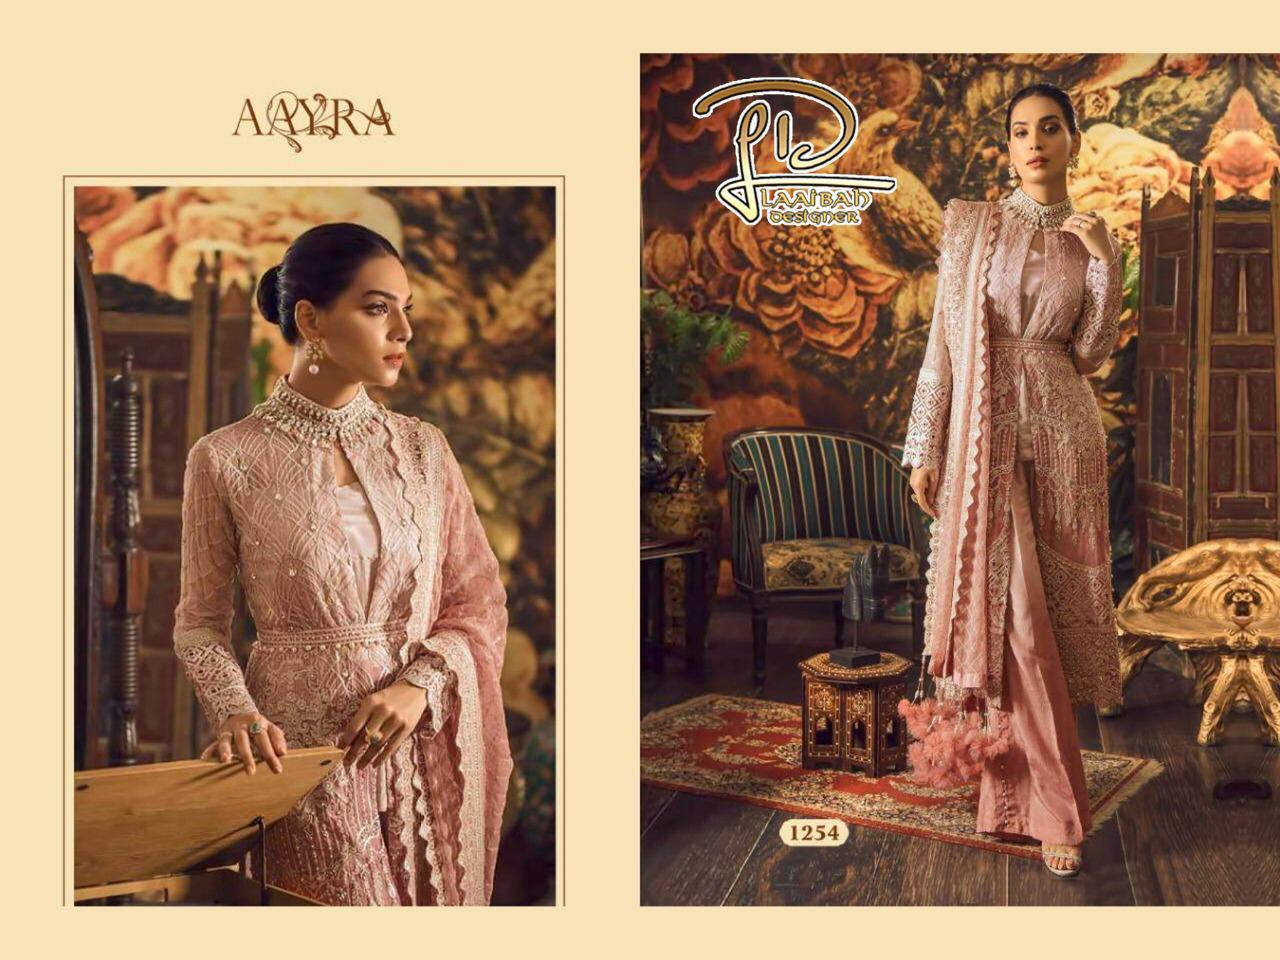 Aayra 1254 Designer Fox Georgette With Embroidery Work Suits In Single